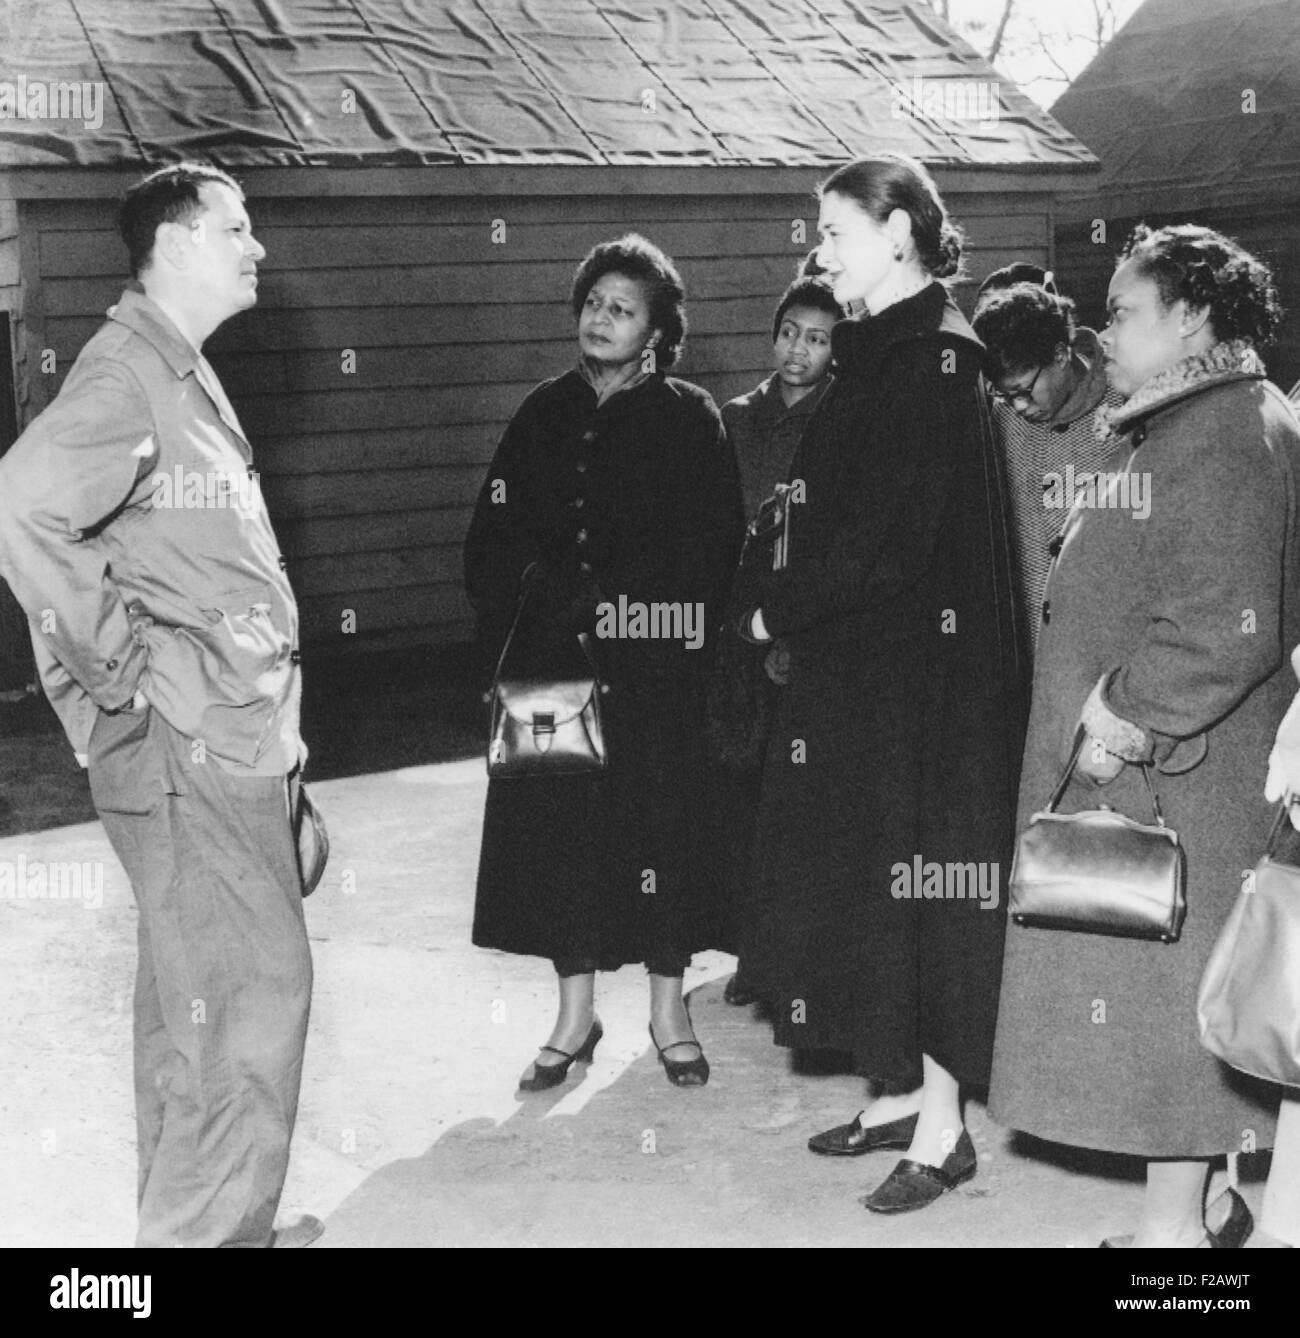 Georgia Gov. Herman Talmadge met with New York women at his farm on Dec. 26, 1952. They appealed to visit an African - Stock Image